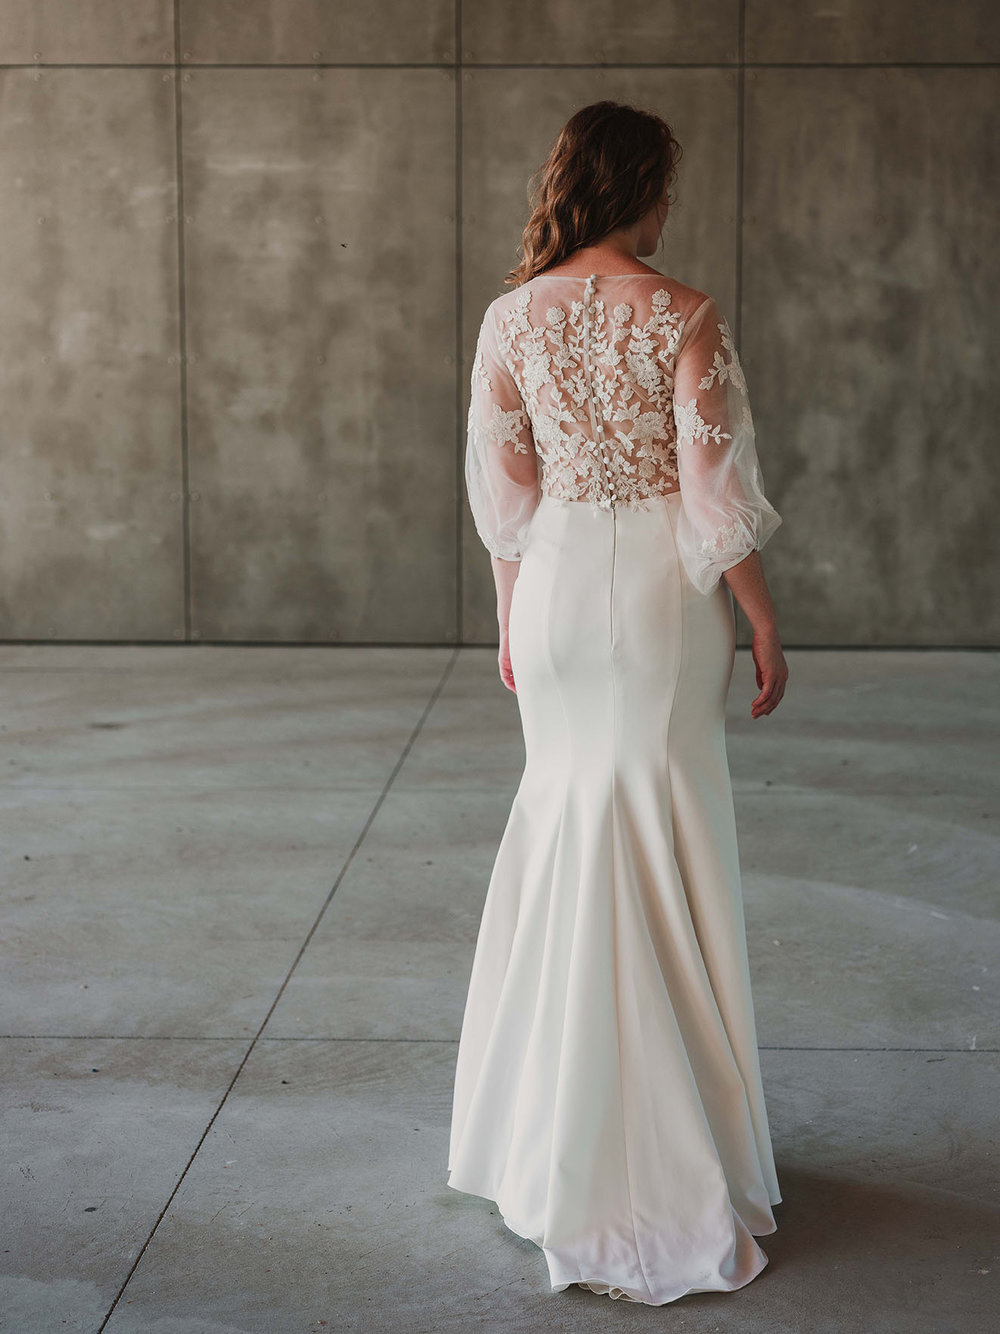 back_2_Rebecca_Schoneveld_Beau_Gown_Removable_Overskirt_romantic_clean_gown_applique_Tulle_crepe_juliet_sleeve.jpg